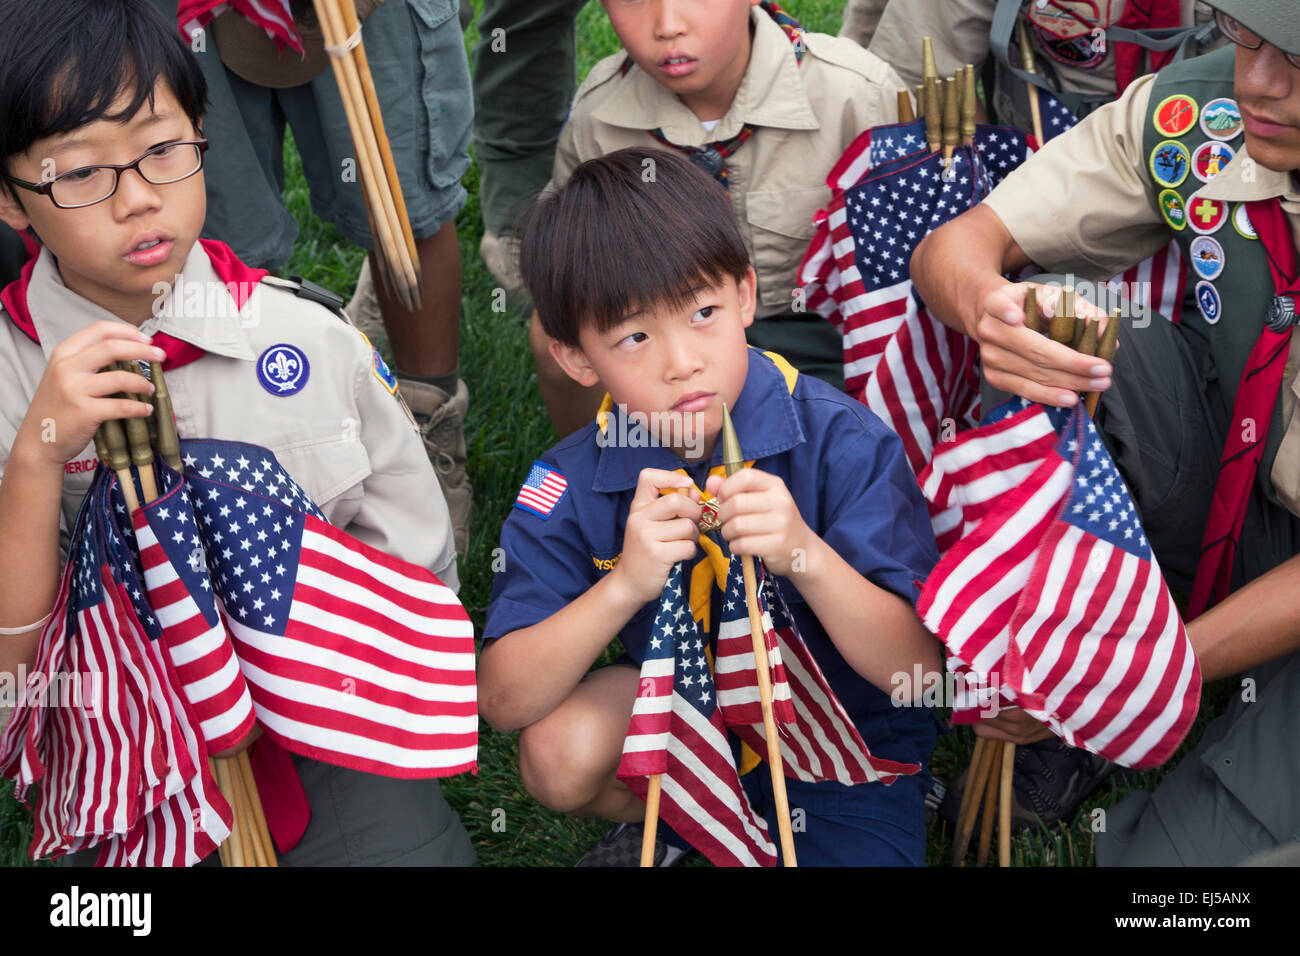 Boyscouts placing 85, 000 US Flags at Annual Memorial Day Event, Los Angeles National Cemetery, California, USA - Stock Image